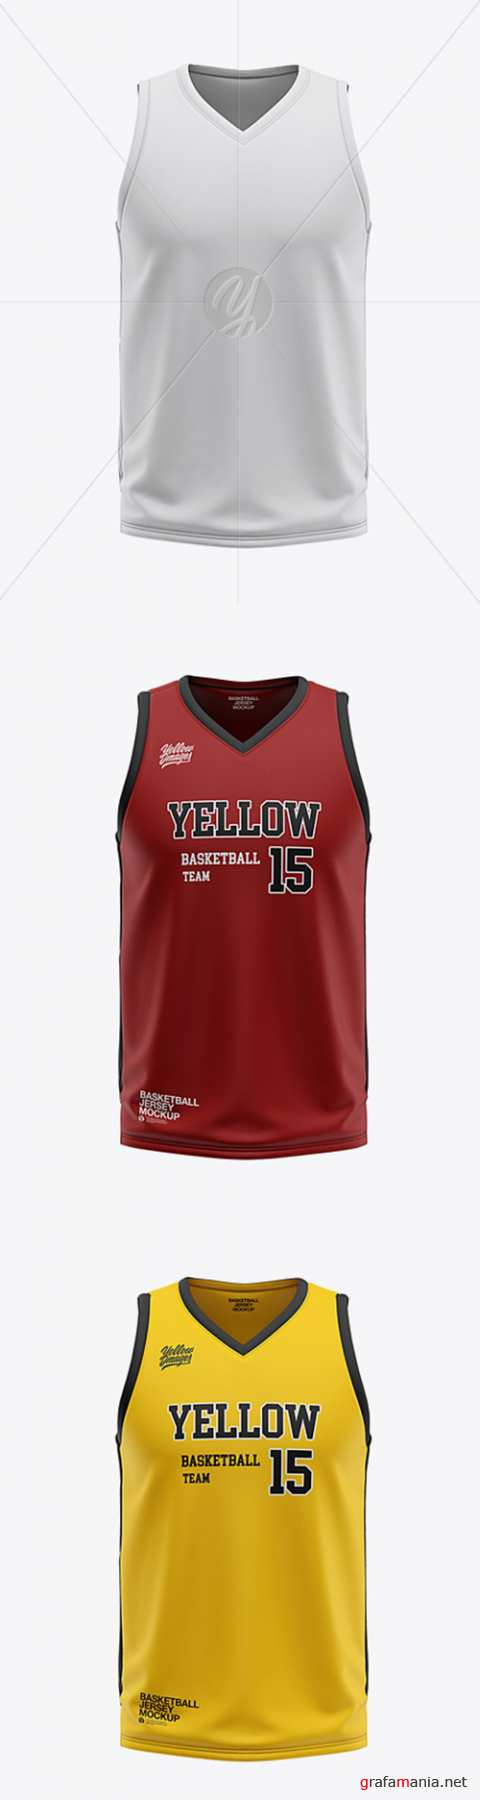 Mens V-Neck Basketball Jersey Mockup - Front View 36056